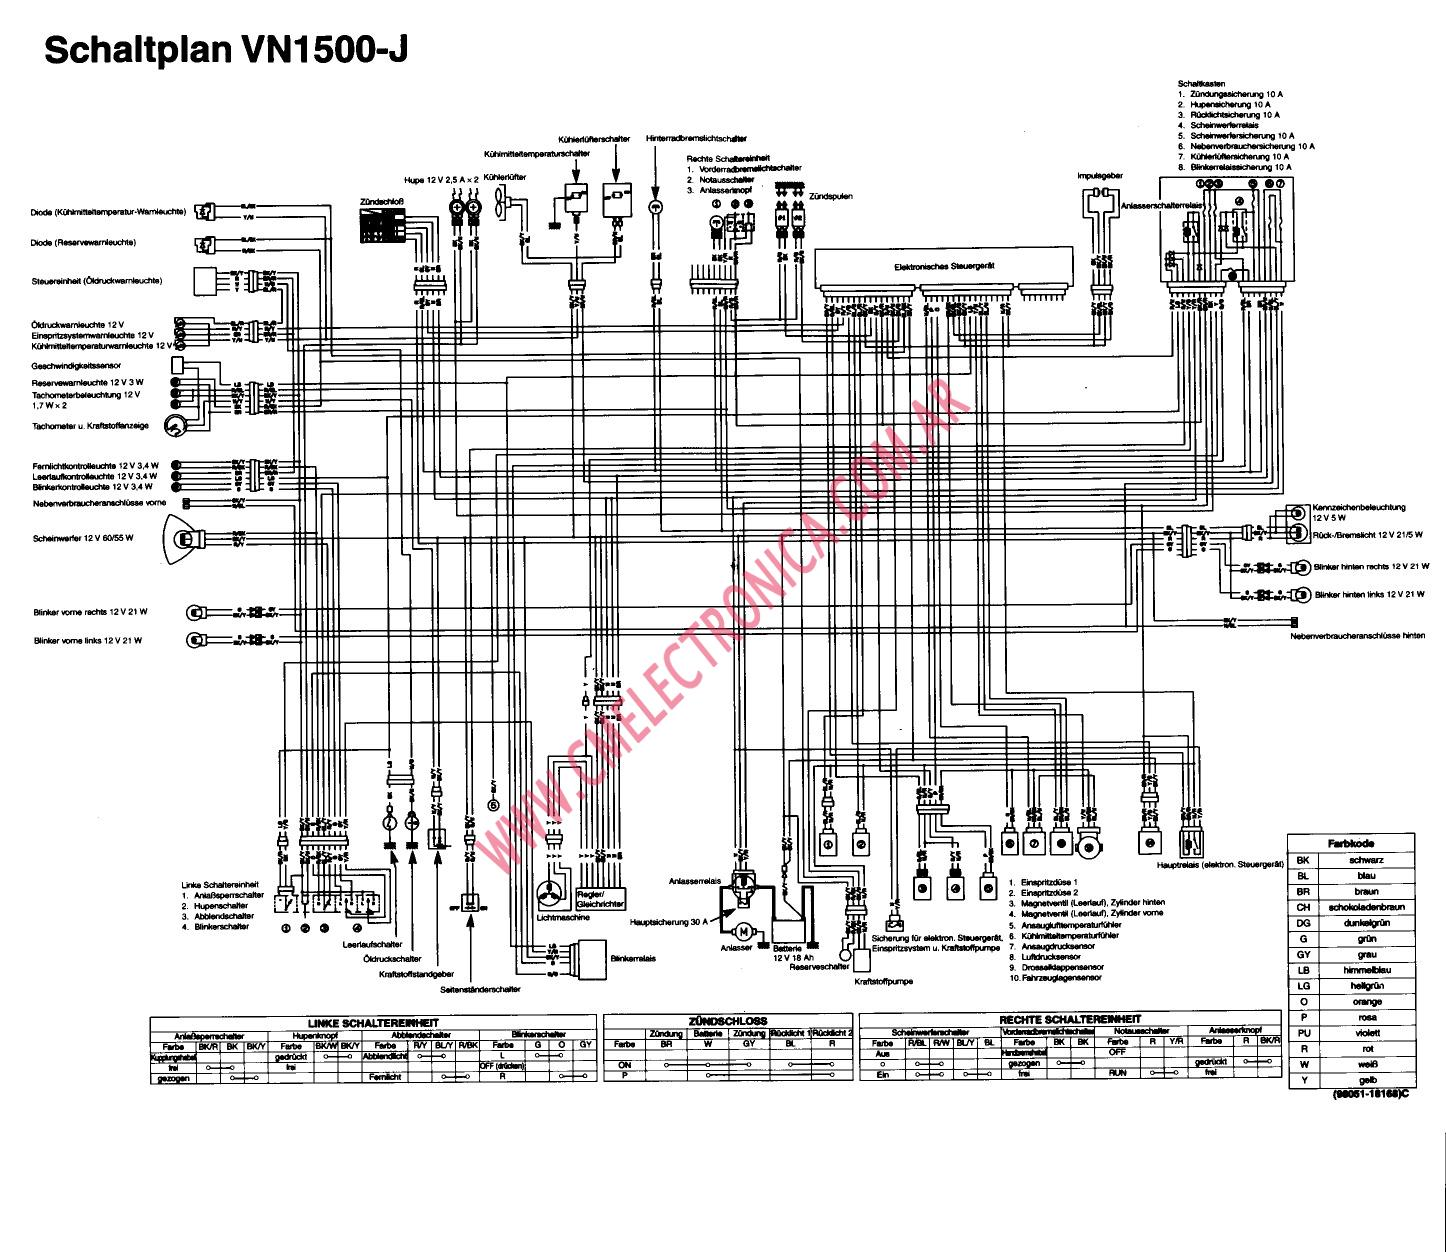 Vulcan 1500 Wiring Diagram Trusted Schematics Diagrams Kawasaki Mule 550 Schematic Library U2022 Rh Vn1500 Exclusive Circuit Internationalsportsoutlet Co 1995 Classic